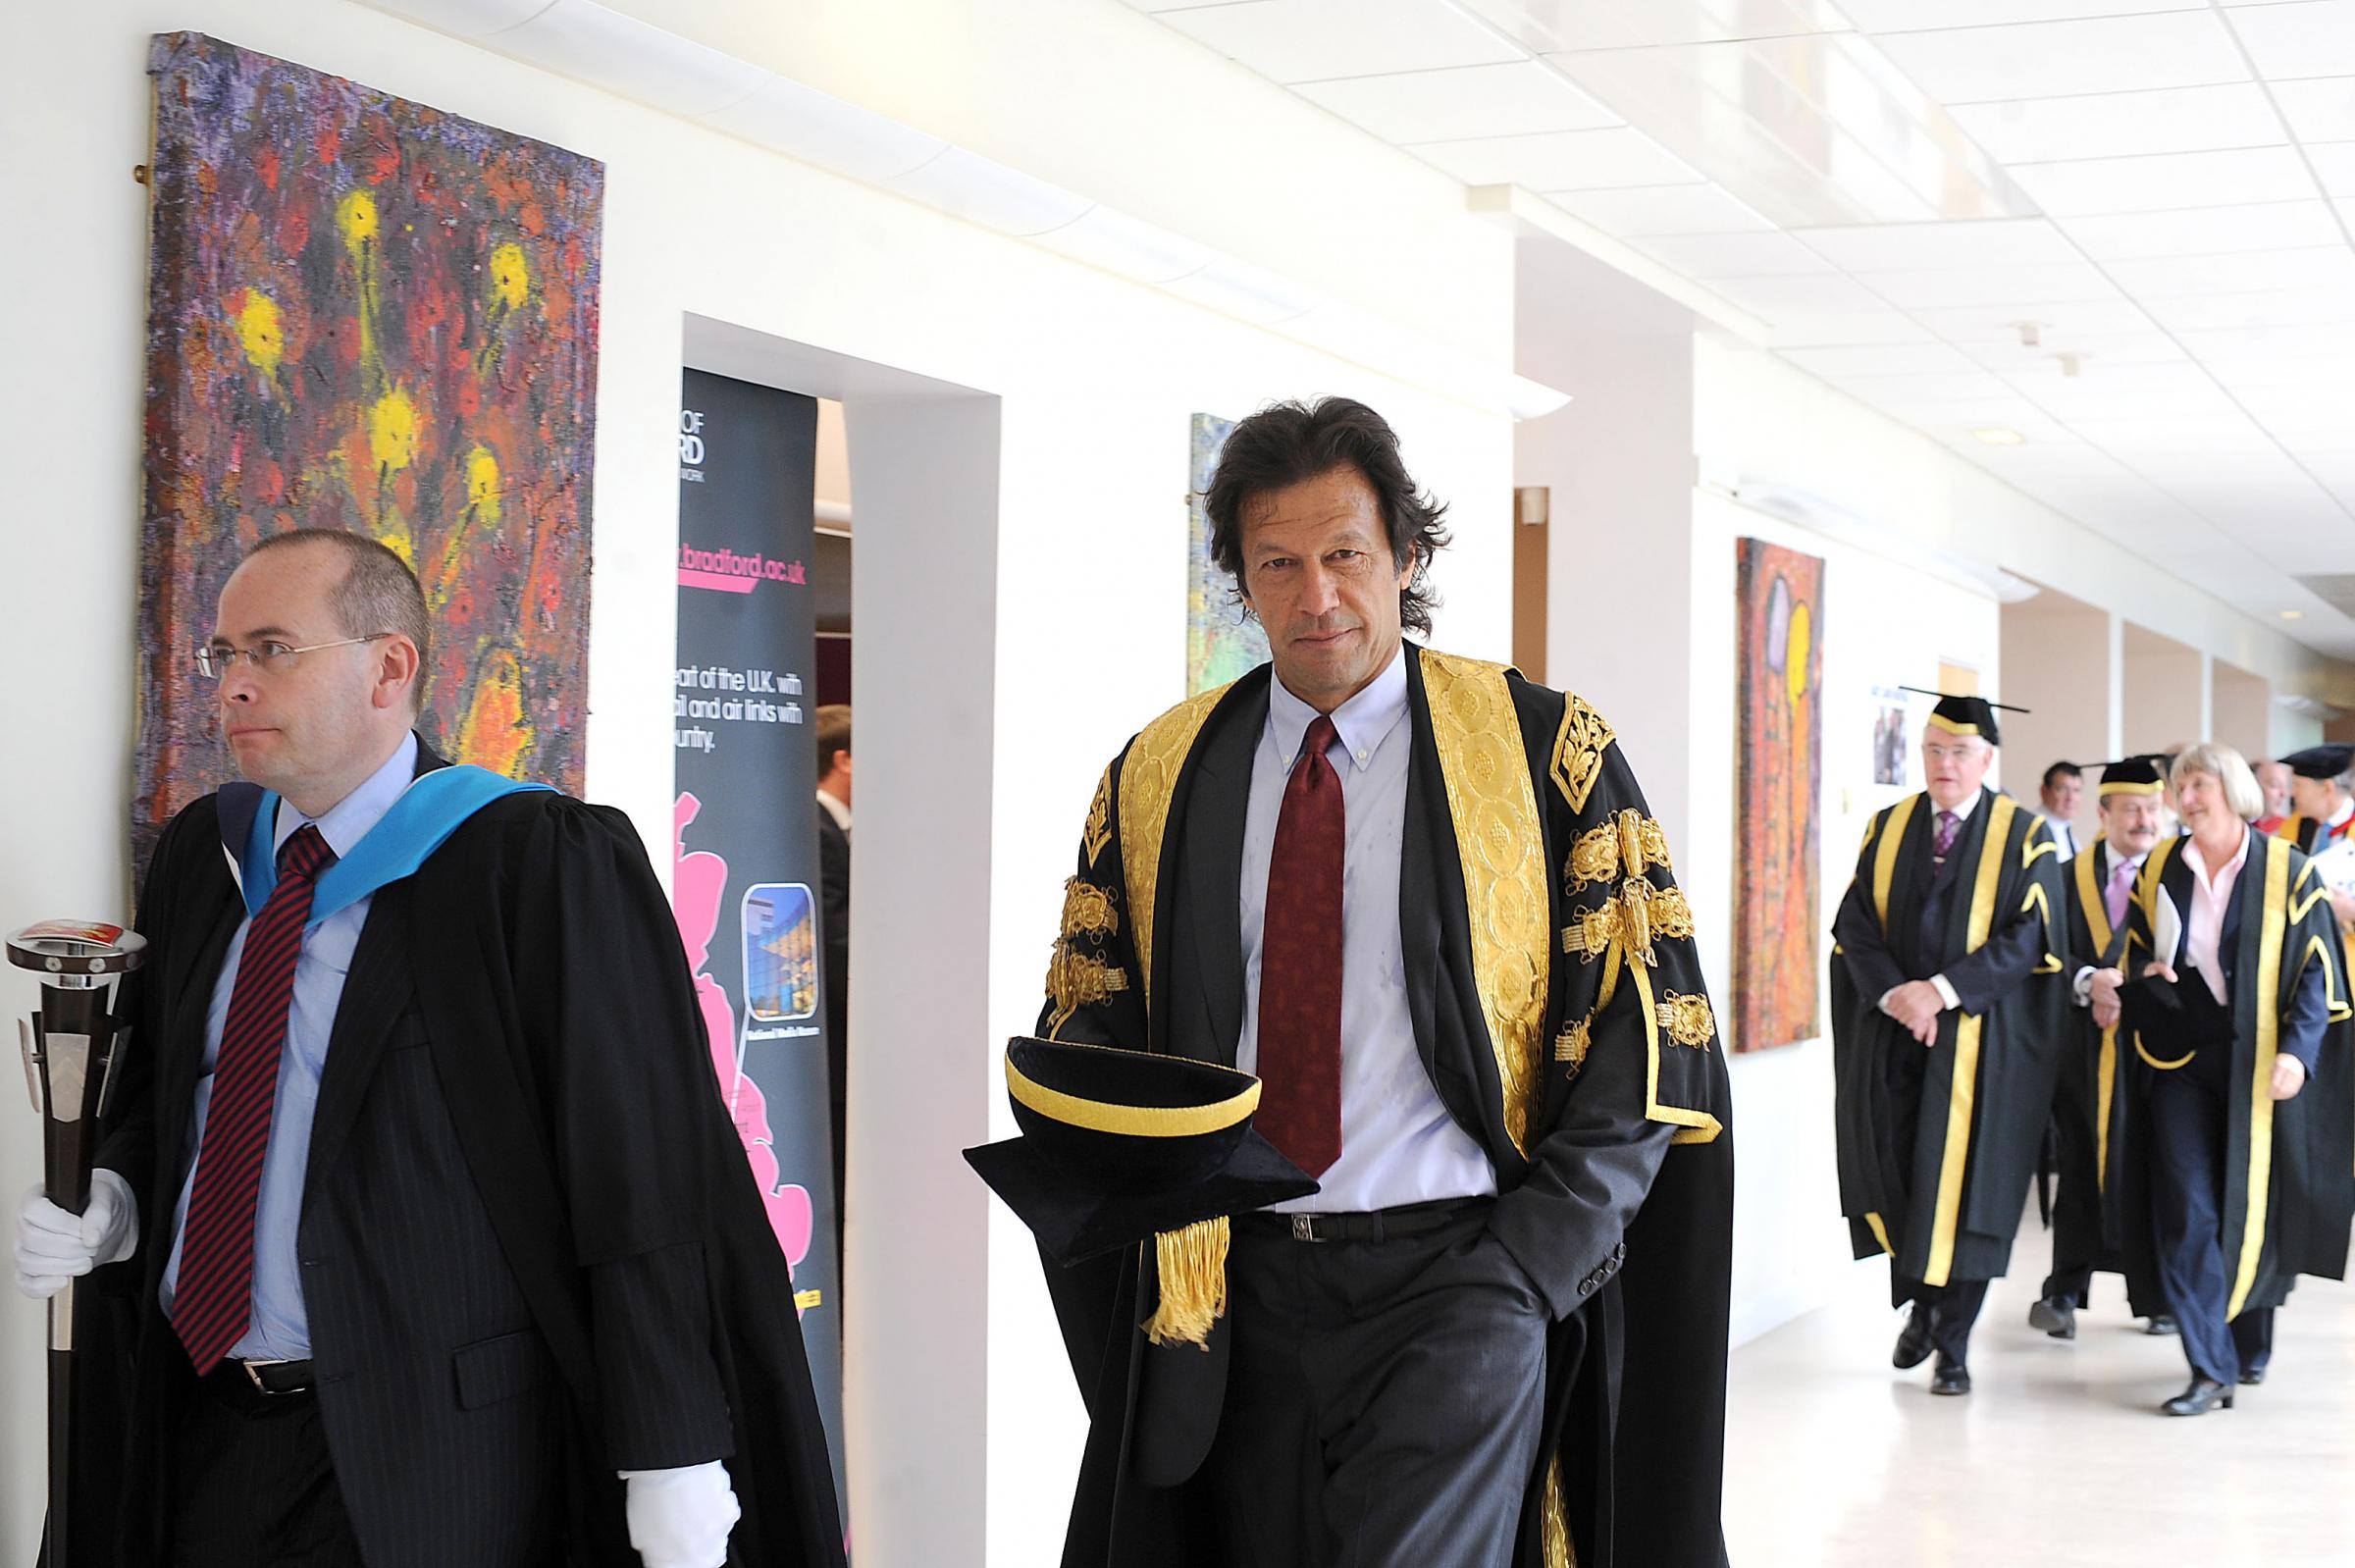 Imran Khan, pictured at a graduation ceremony, is to have his role as Chancellor of the University of Bradford questioned